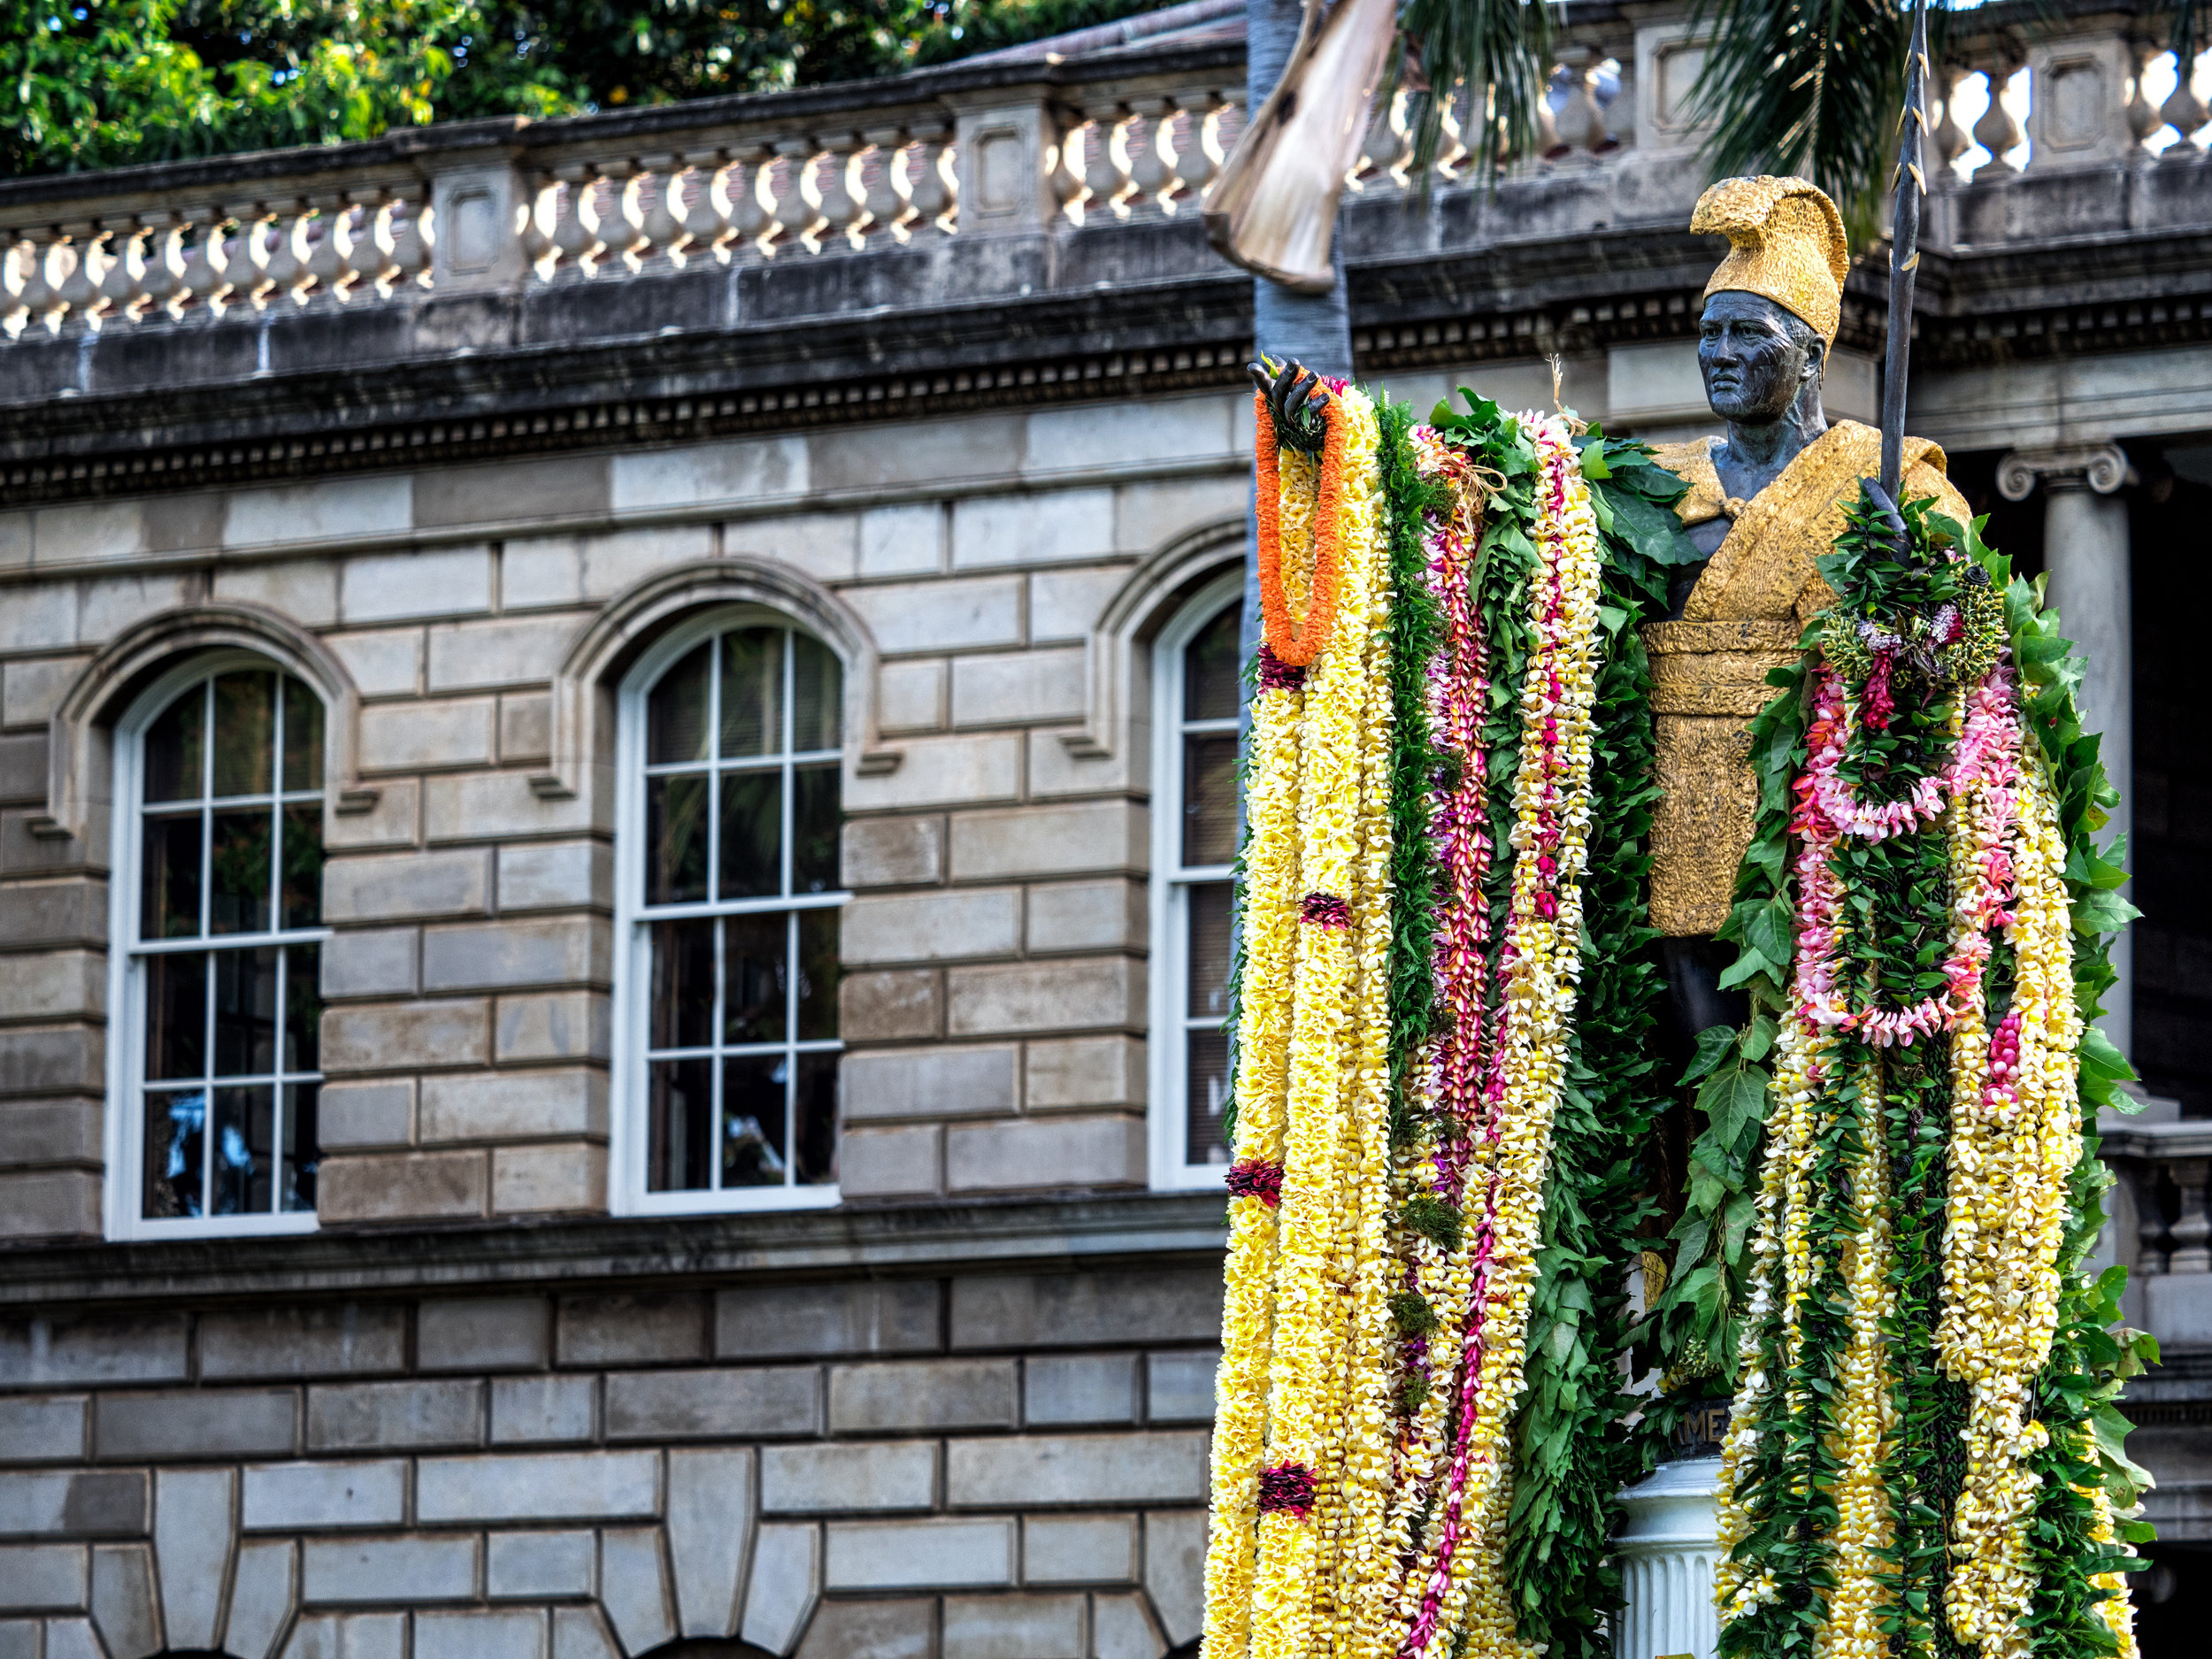 Kamehameha is decorated with leis outside Ali'iolani Hale in Honolulu. The same ceremony occurs in the King's birthplace of North Kohala, on the Big Island.